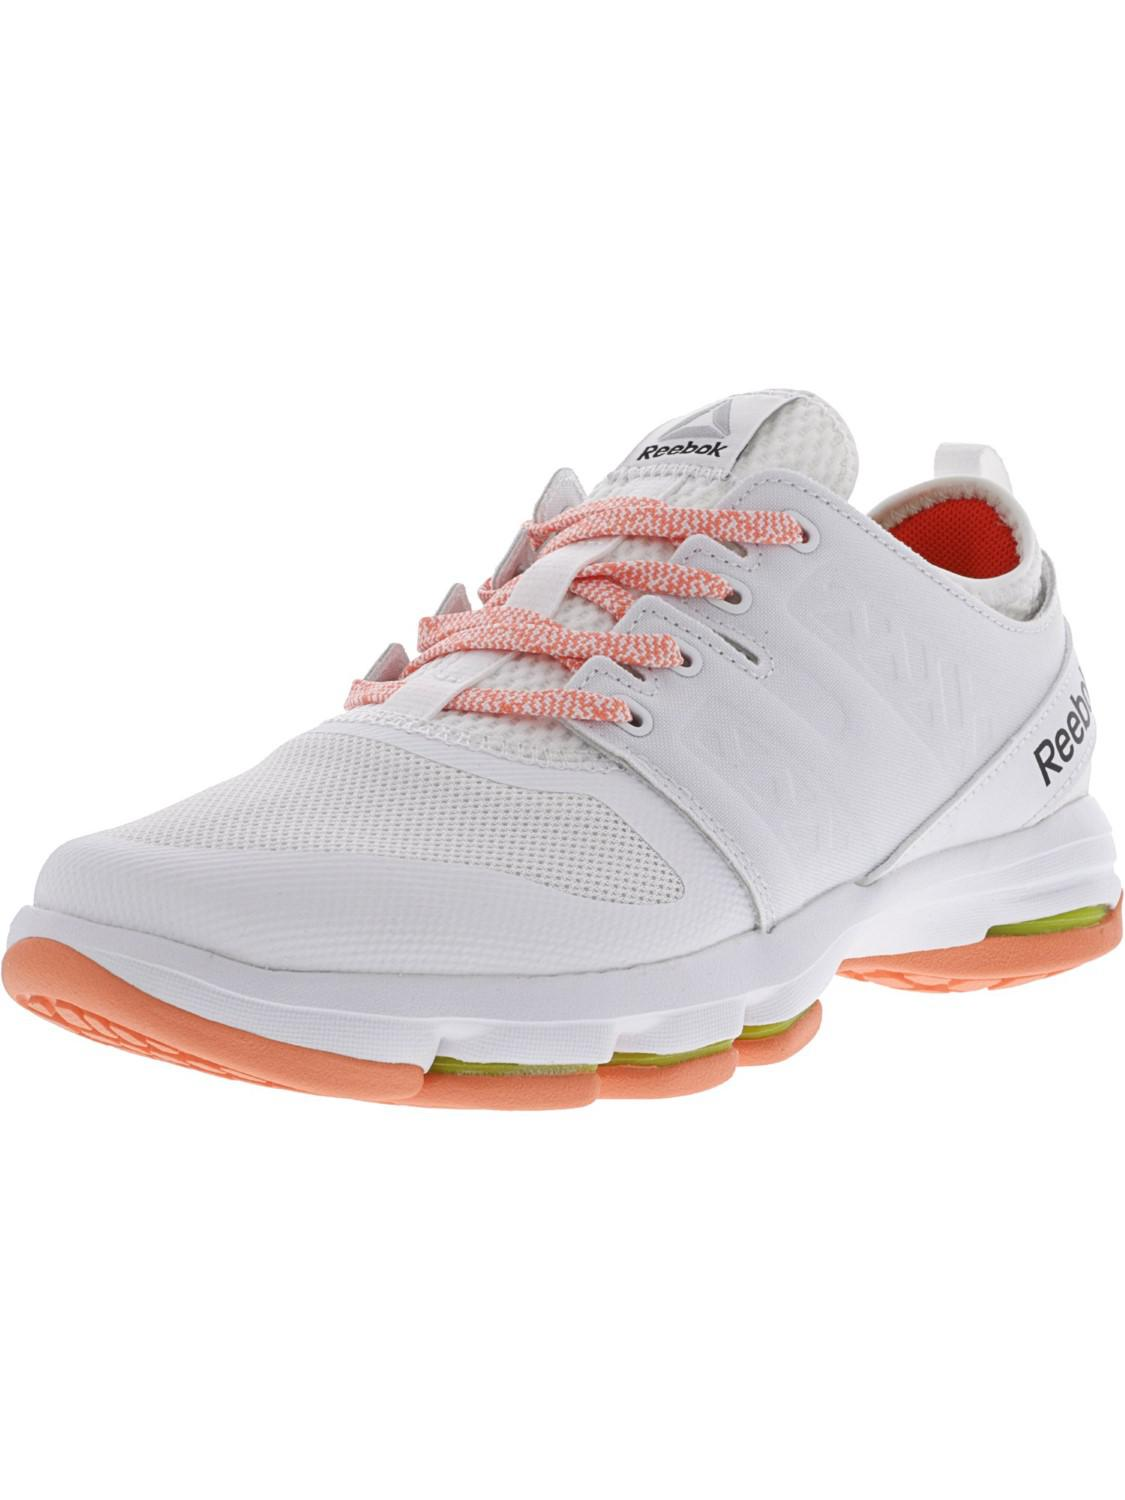 f0fc4655a698 Lyst - Reebok Cloudride Dmx White   Pink Carotene Ankle-high Walking ...